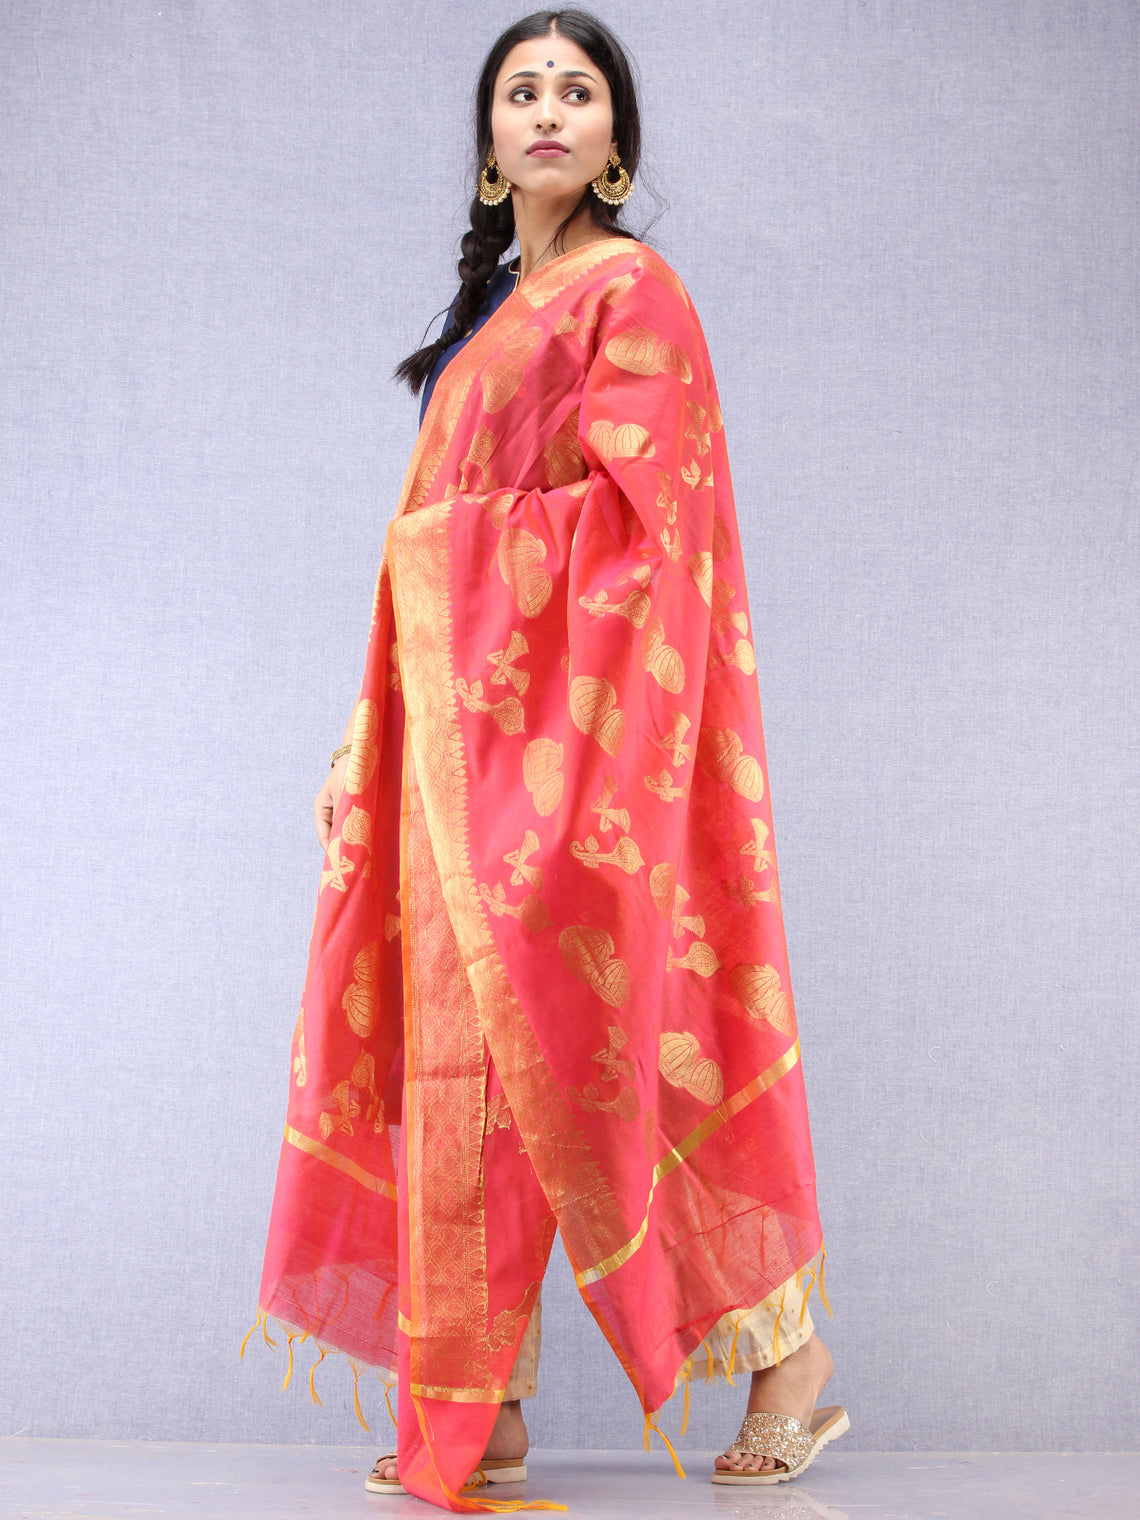 Banarasi Chanderi Dupatta With Zari Work - Magenta & Gold - D04170830